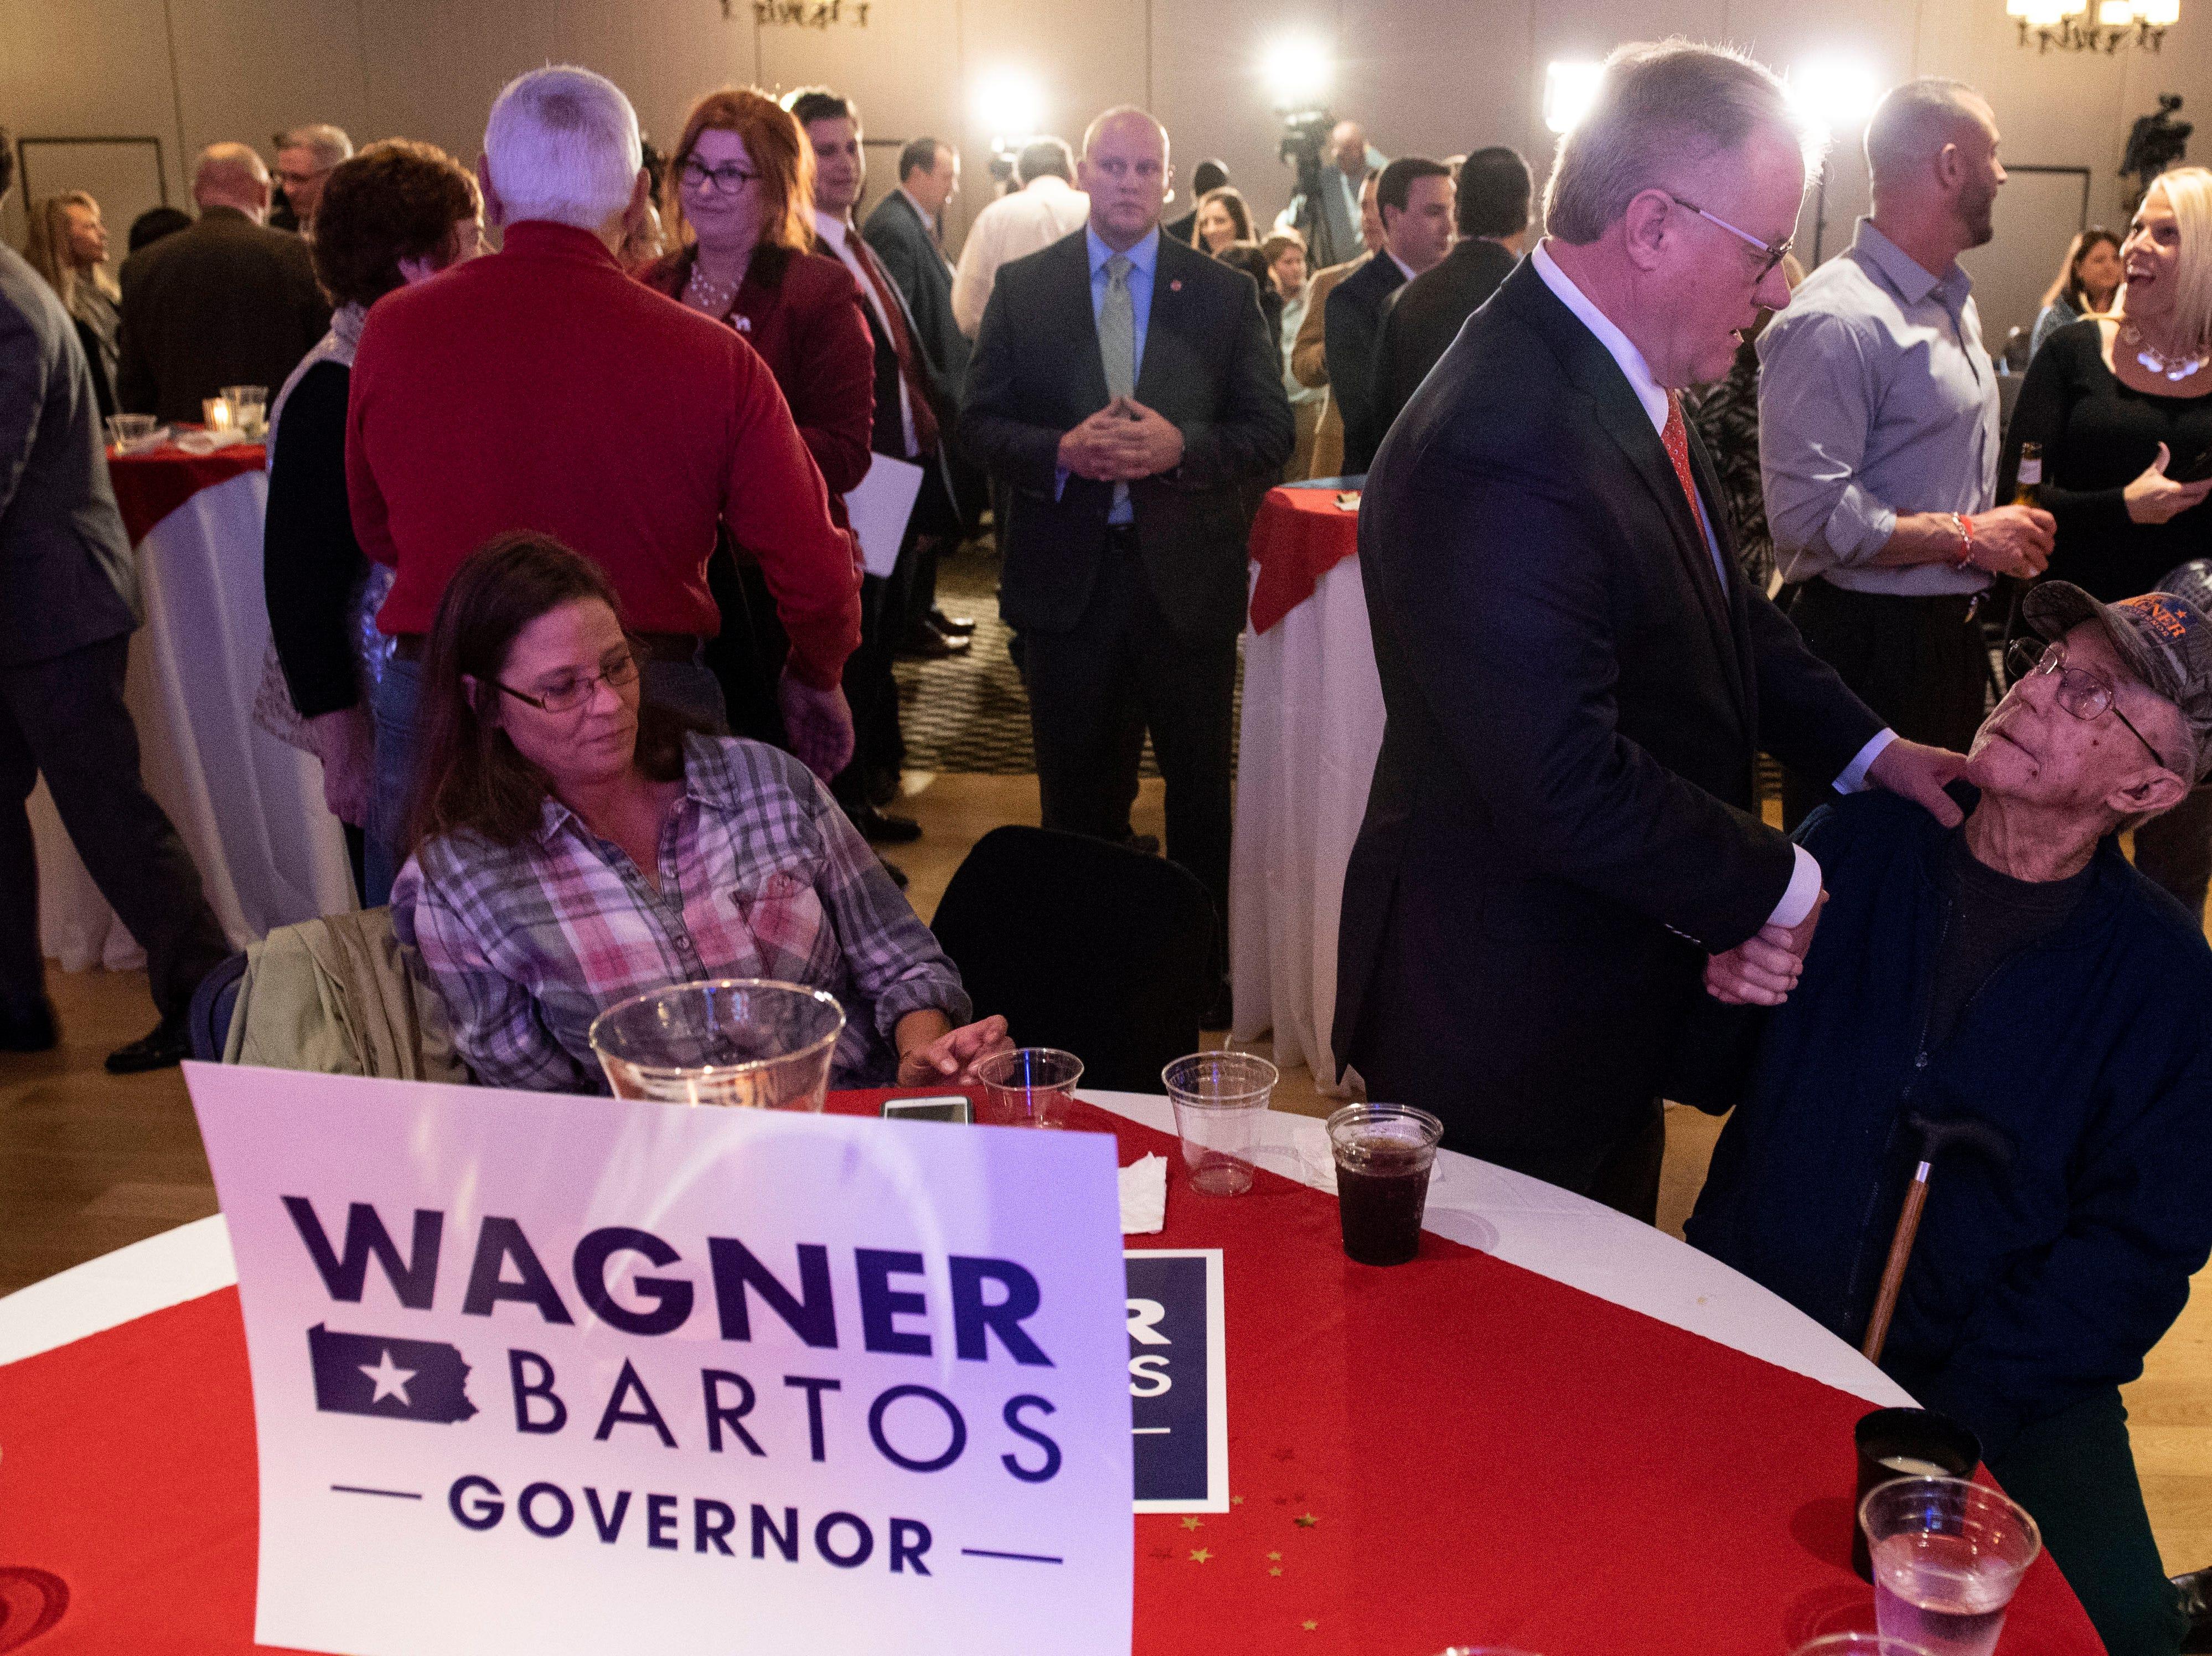 Scott Wagner speaks to his father, Jack Wagner, right, after giving his concession speech at his election watch party at the Wyndham Garden York hotel on Tuesday, Nov. 6, 2018. Wagner lost to Democratic incumbent Tom Wolf. During his concession speech, Wagner said he's not going anywhere.